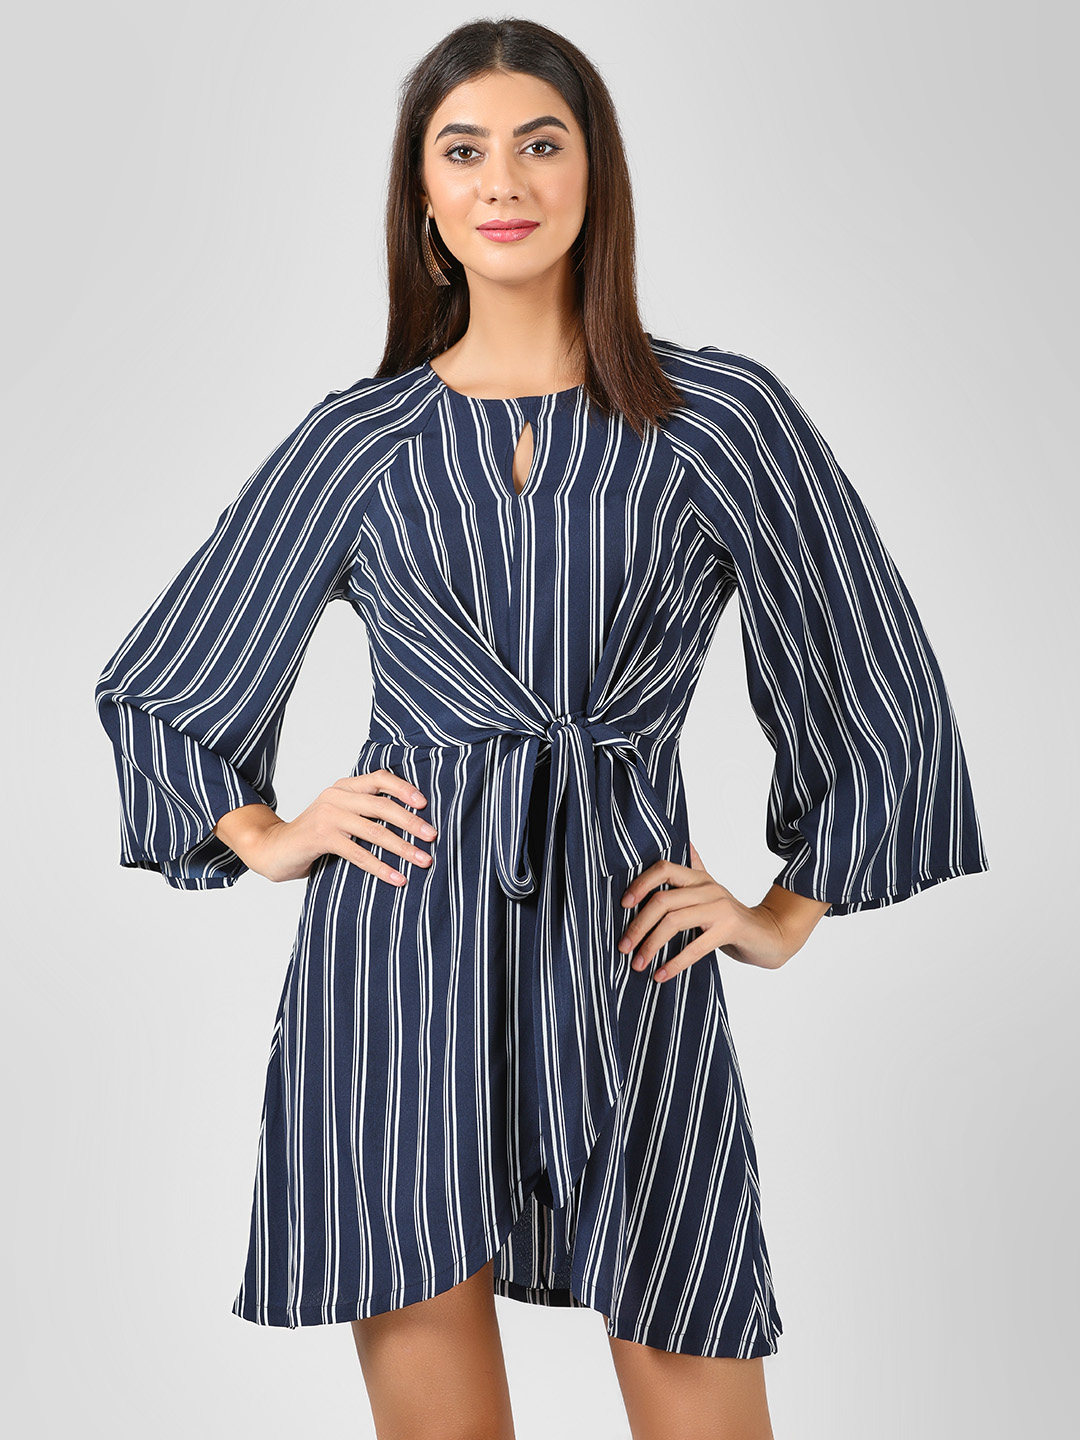 Sbuys Blue/White Front Knot Striped Dress 1